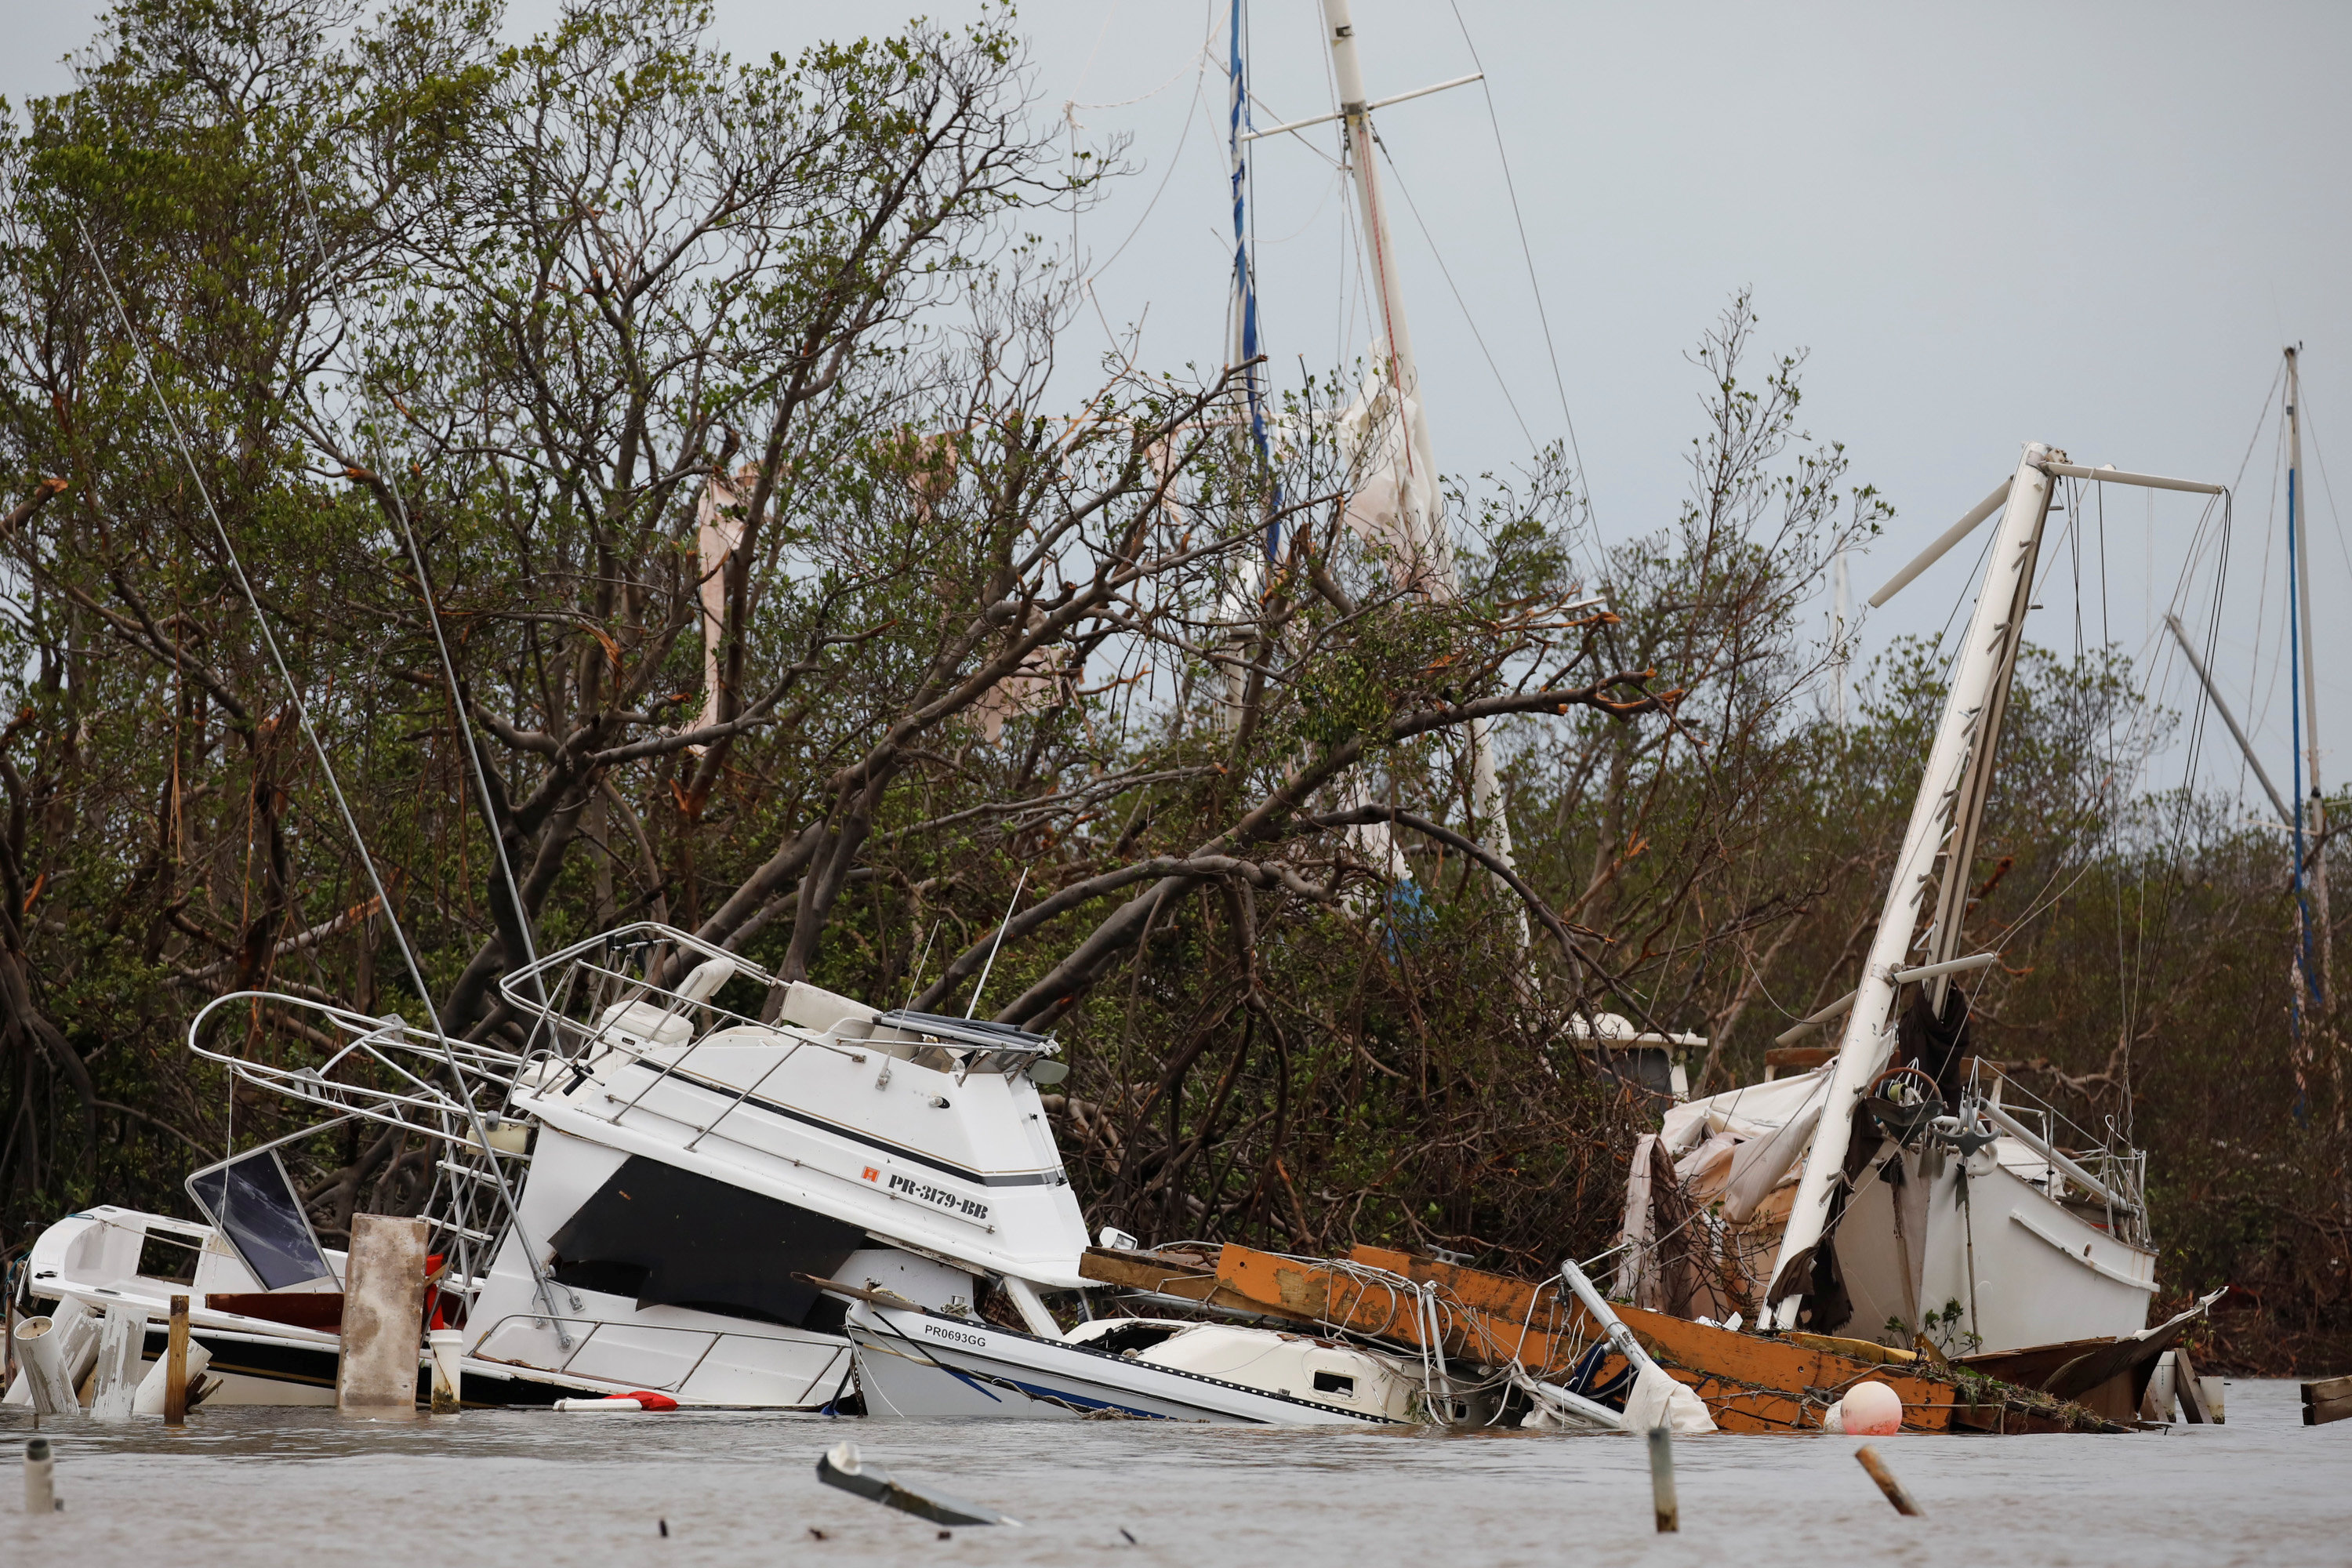 Damaged boats are seen after the area was hit by Hurricane Maria in Salinas, Puerto Rico on Sept. 21, 2017. (REUTERS/Carlos Garcia Rawlins)